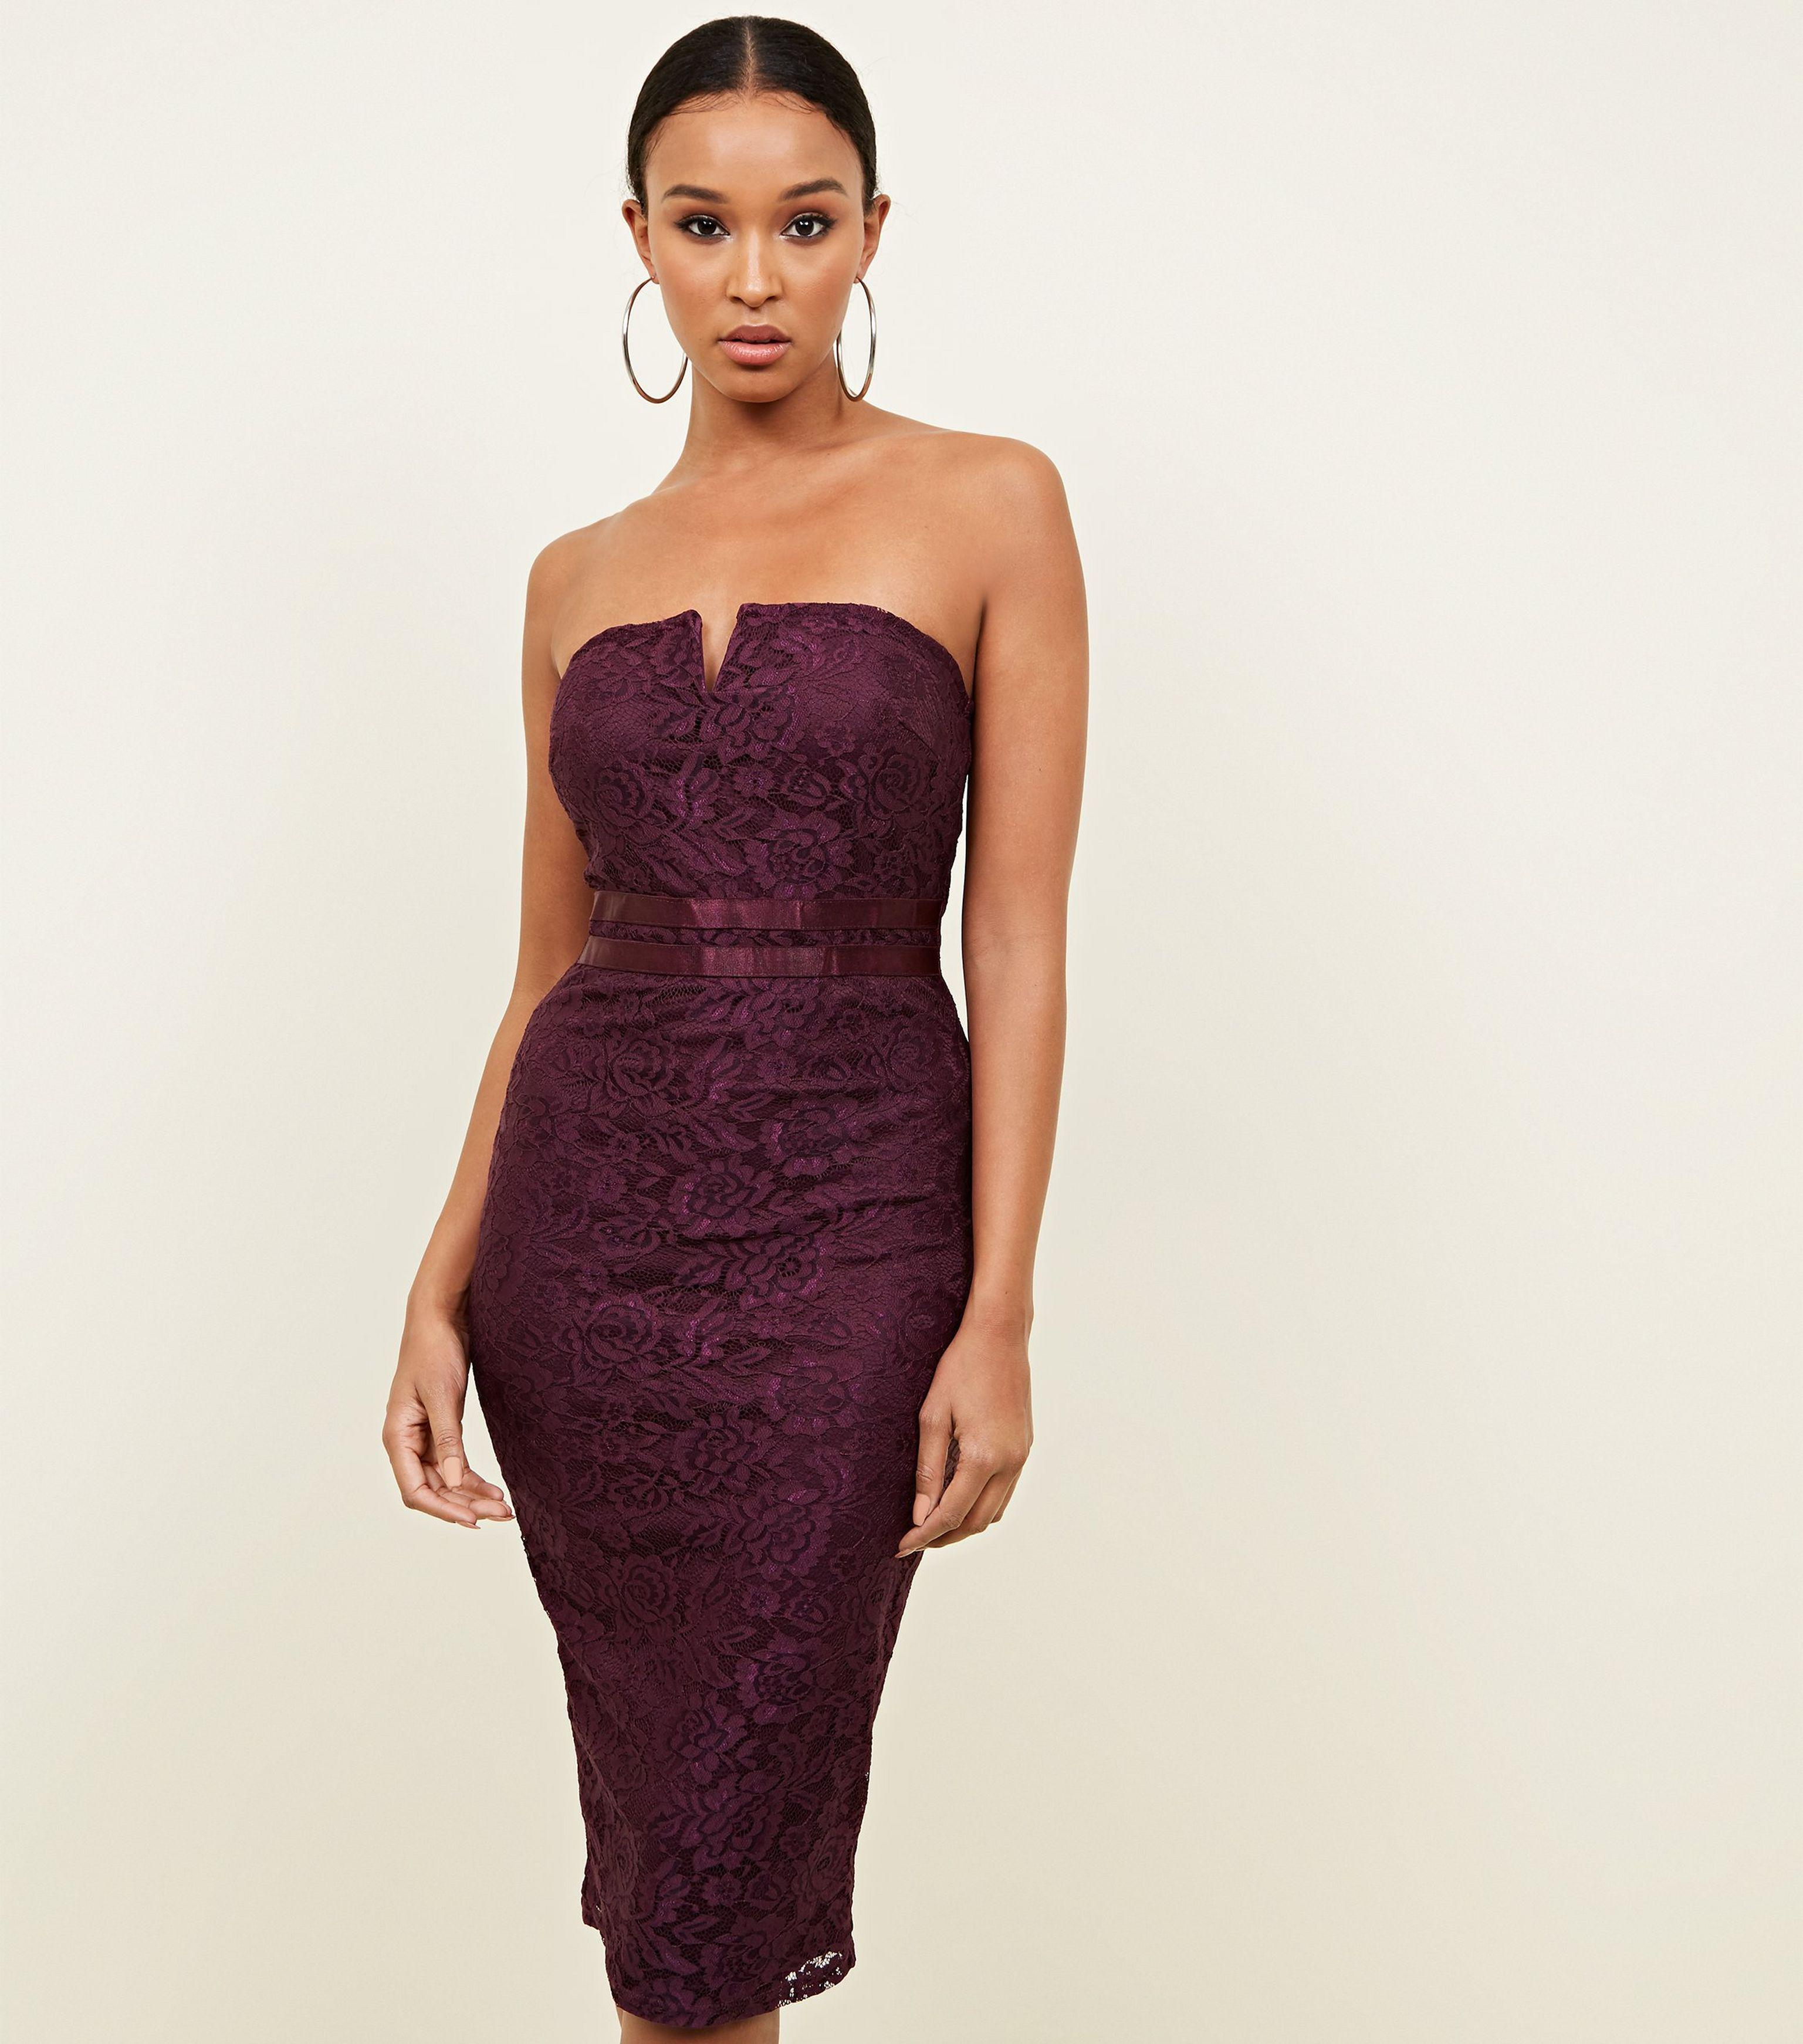 ab186878ef6e AX Paris. Women's Purple Burgundy Lace Strapless Bodycon Dress. £35 From New  Look